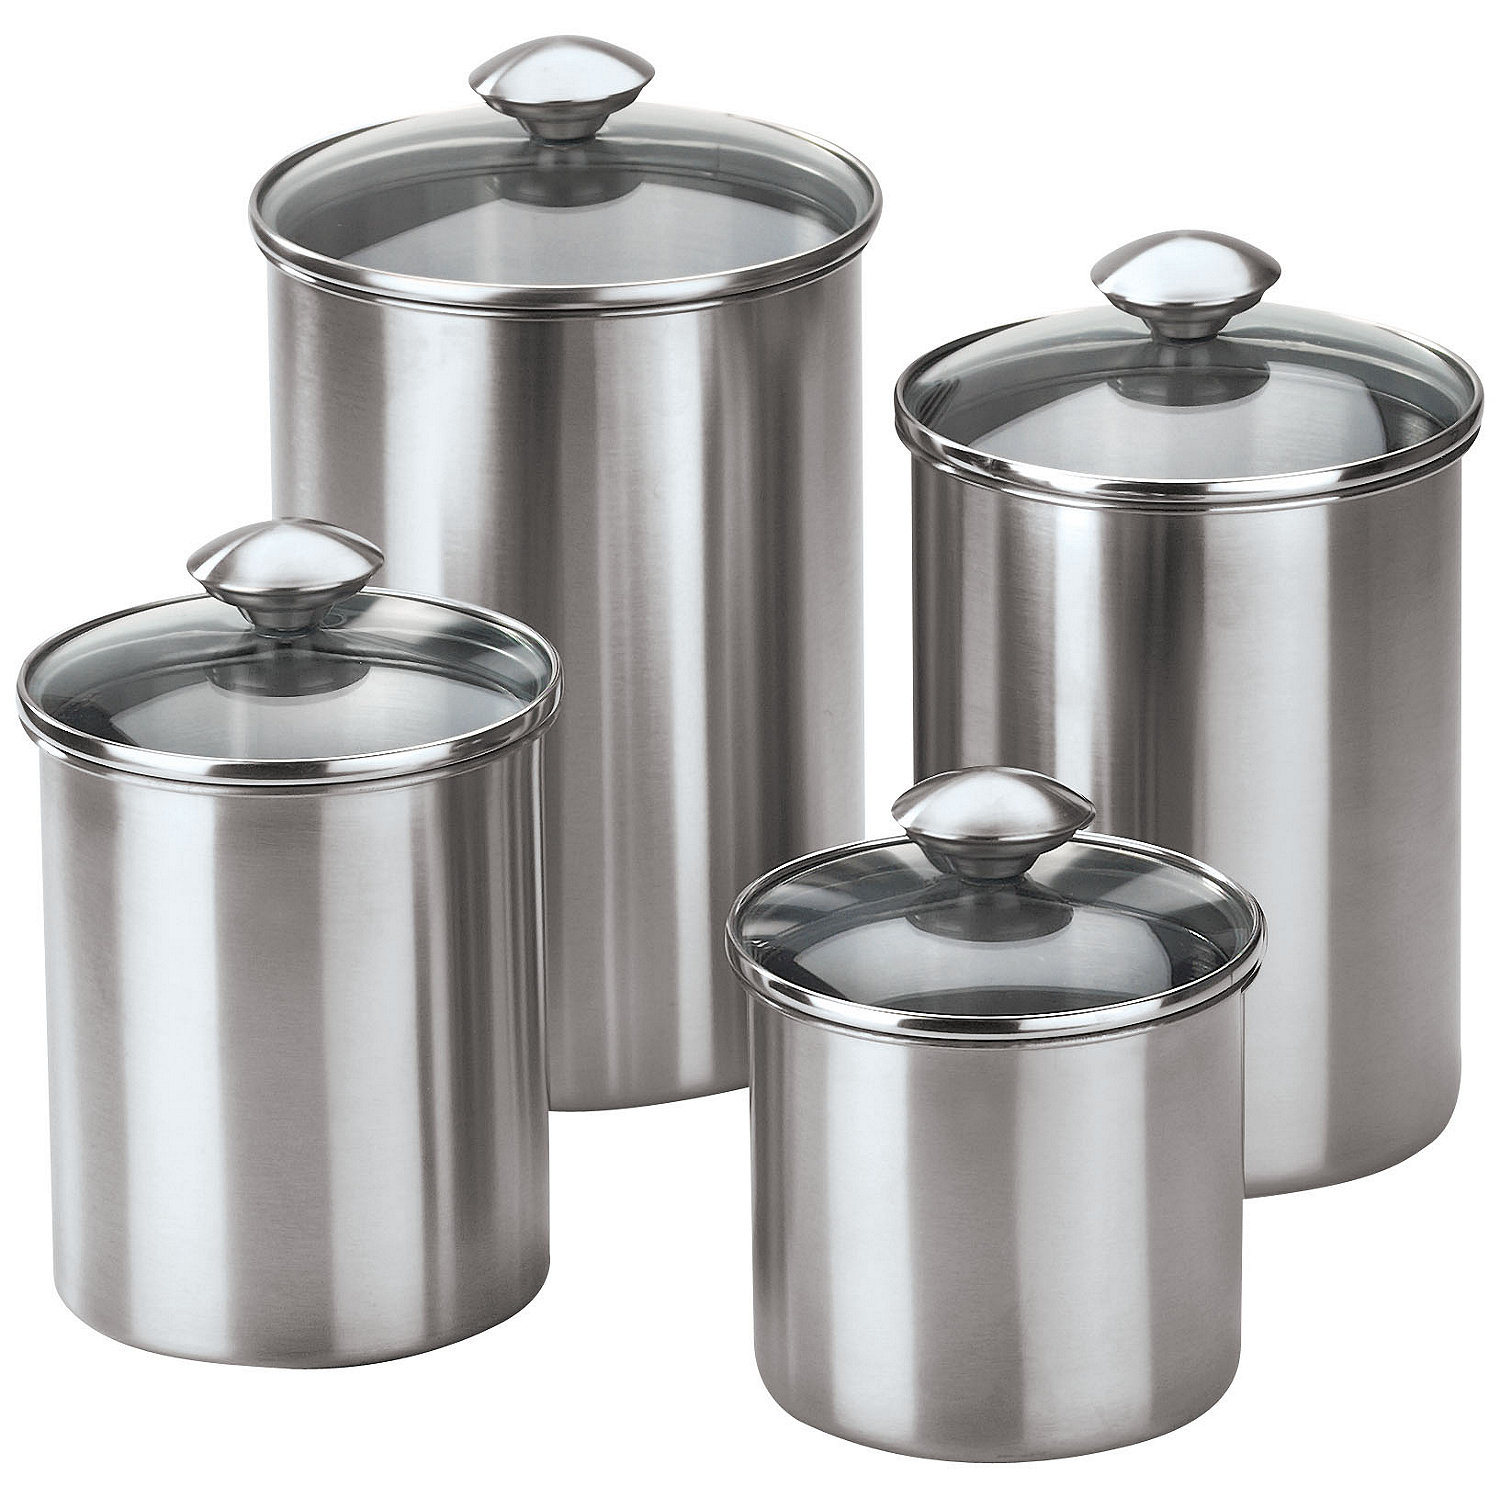 kitchen canisters 4 piece stainless steel modern kitchen canister set ebay